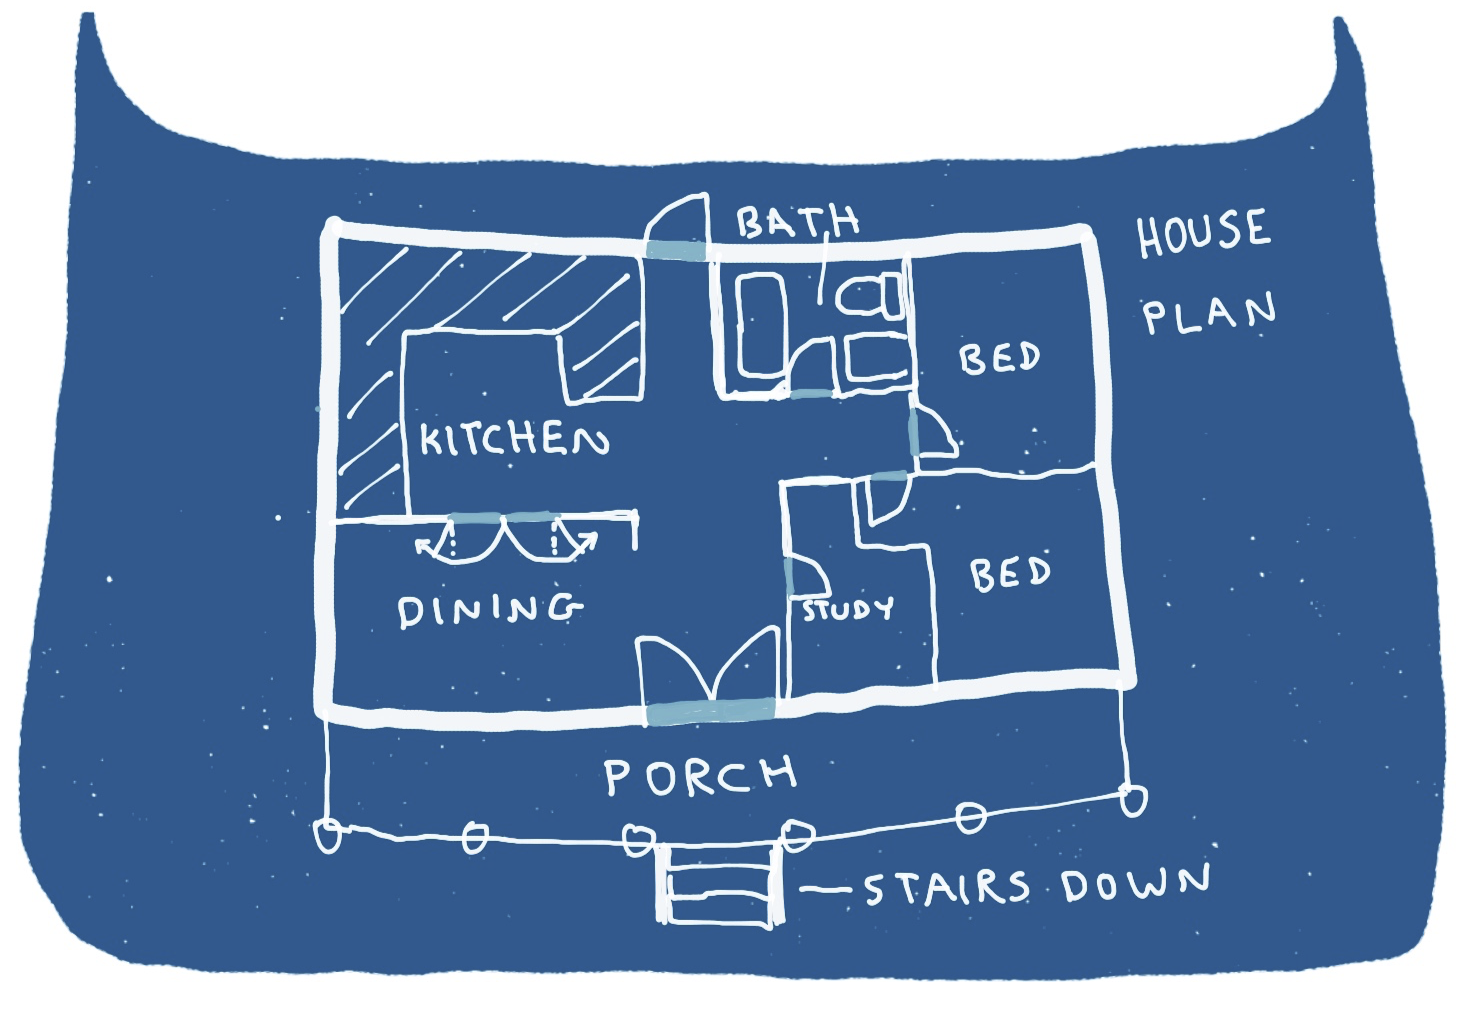 plan-1-house.png